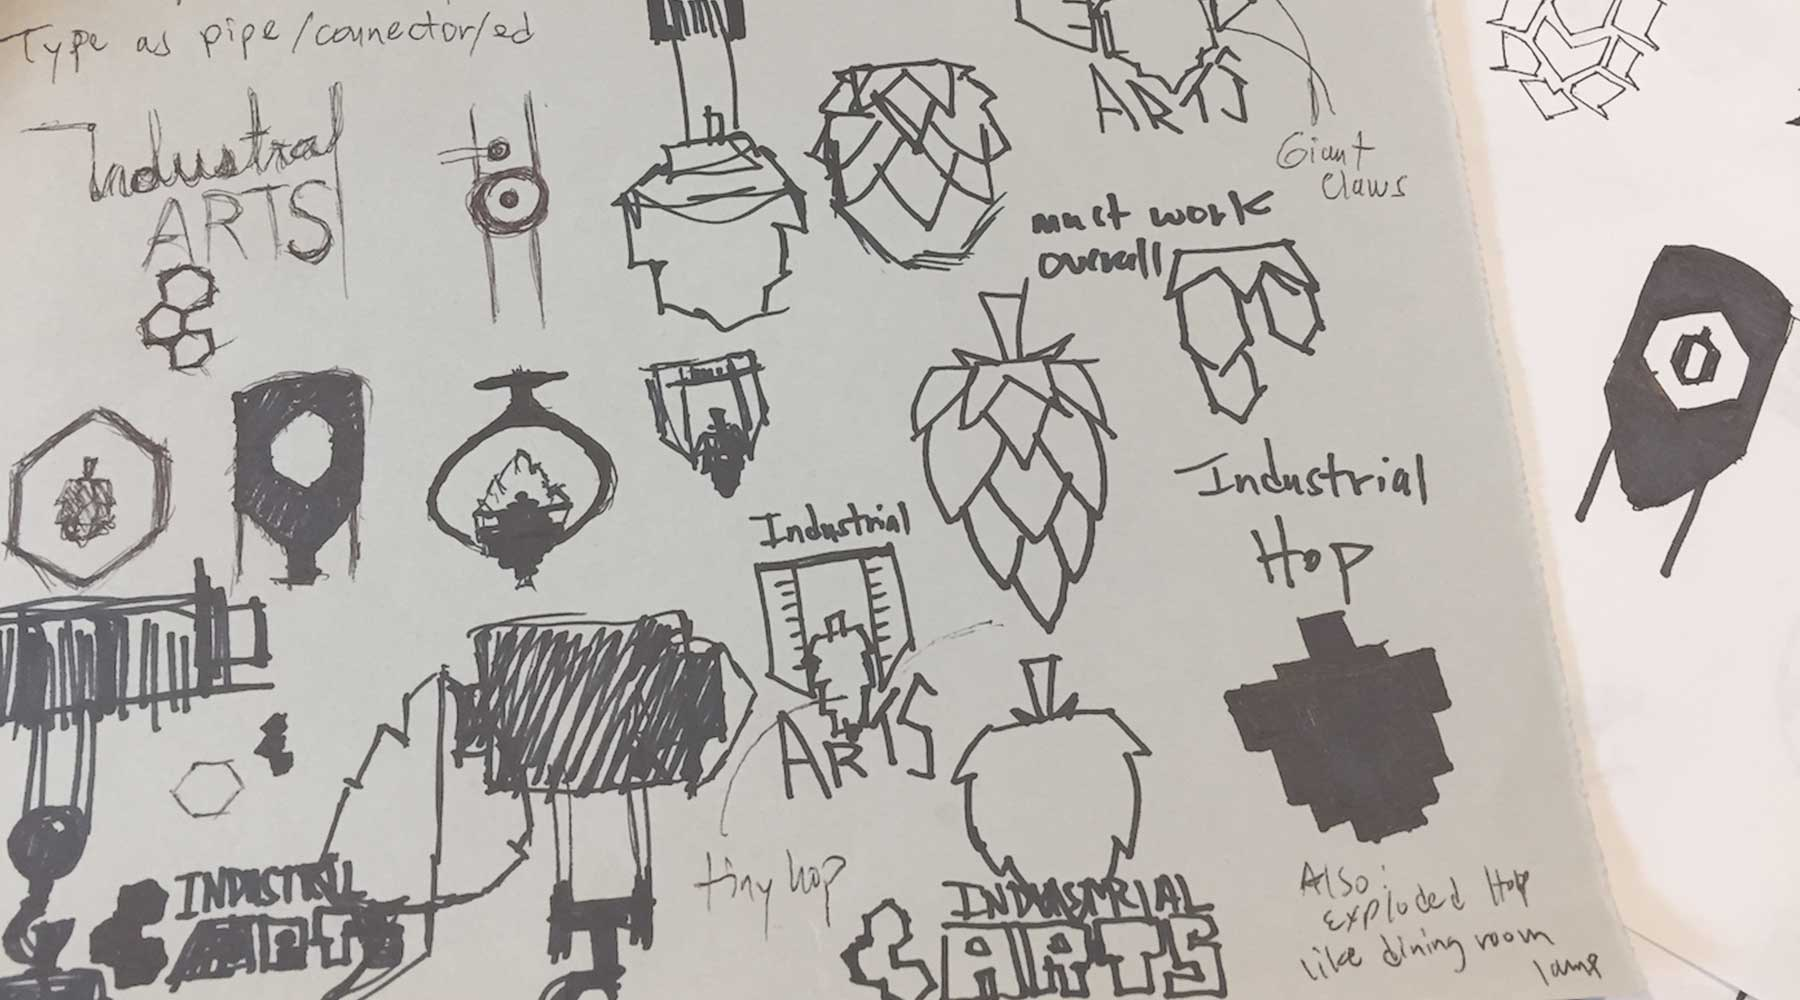 Industrial Arts Brewing Company | Just Wine